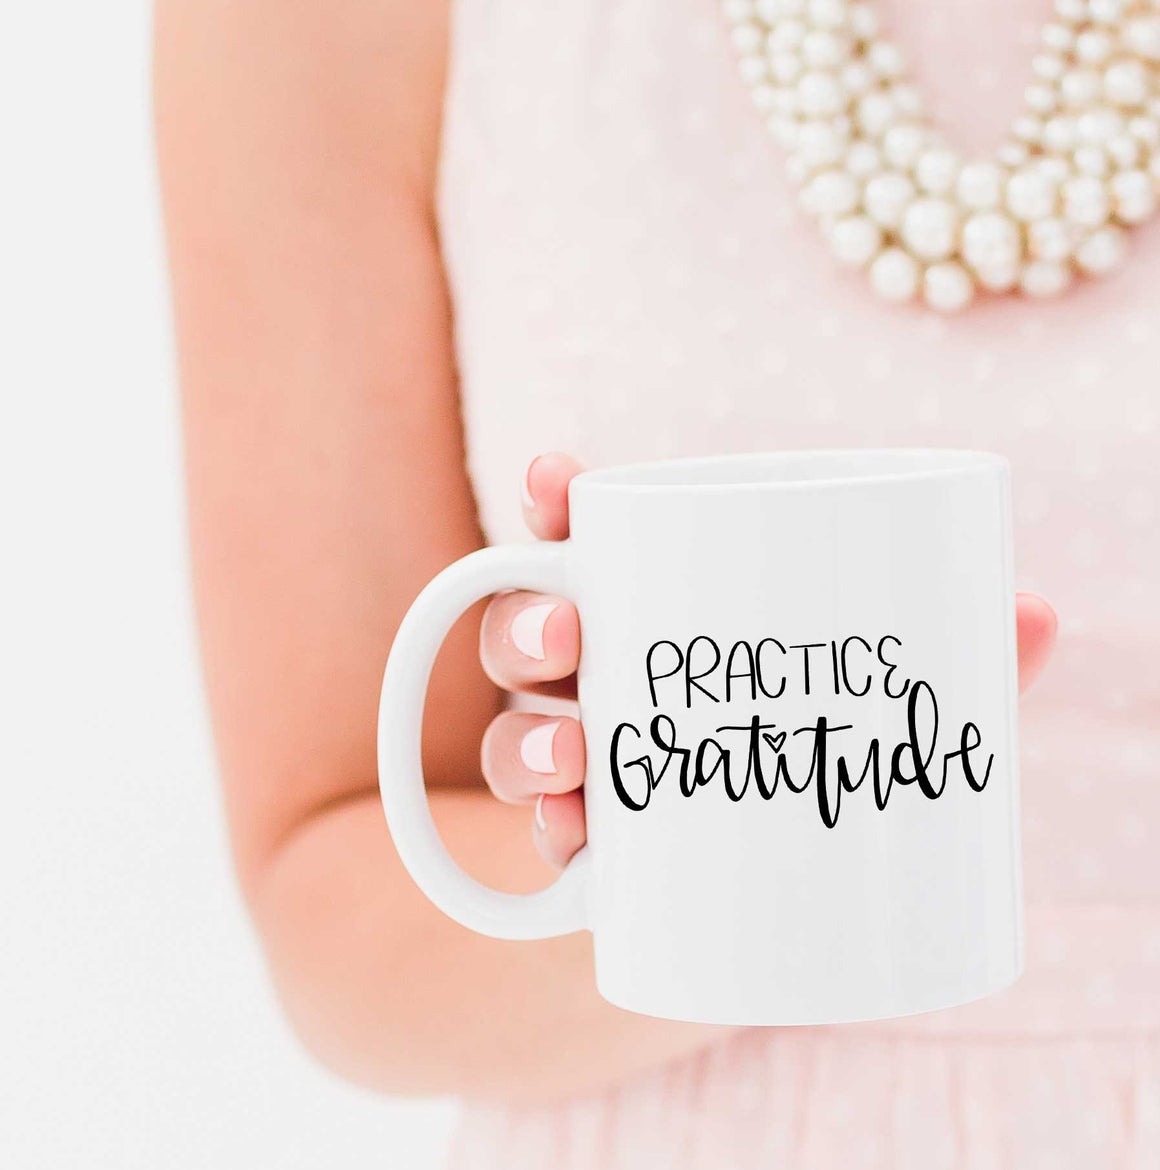 Full Heart Co's Hand-Lettered Practice Gratitude mug. Remember to practice gratitude every morning with this coffee mug. Buy it for yourself or a friend. This mug makes the perfect addition to your fall/thanksgiving coffee mug rack.